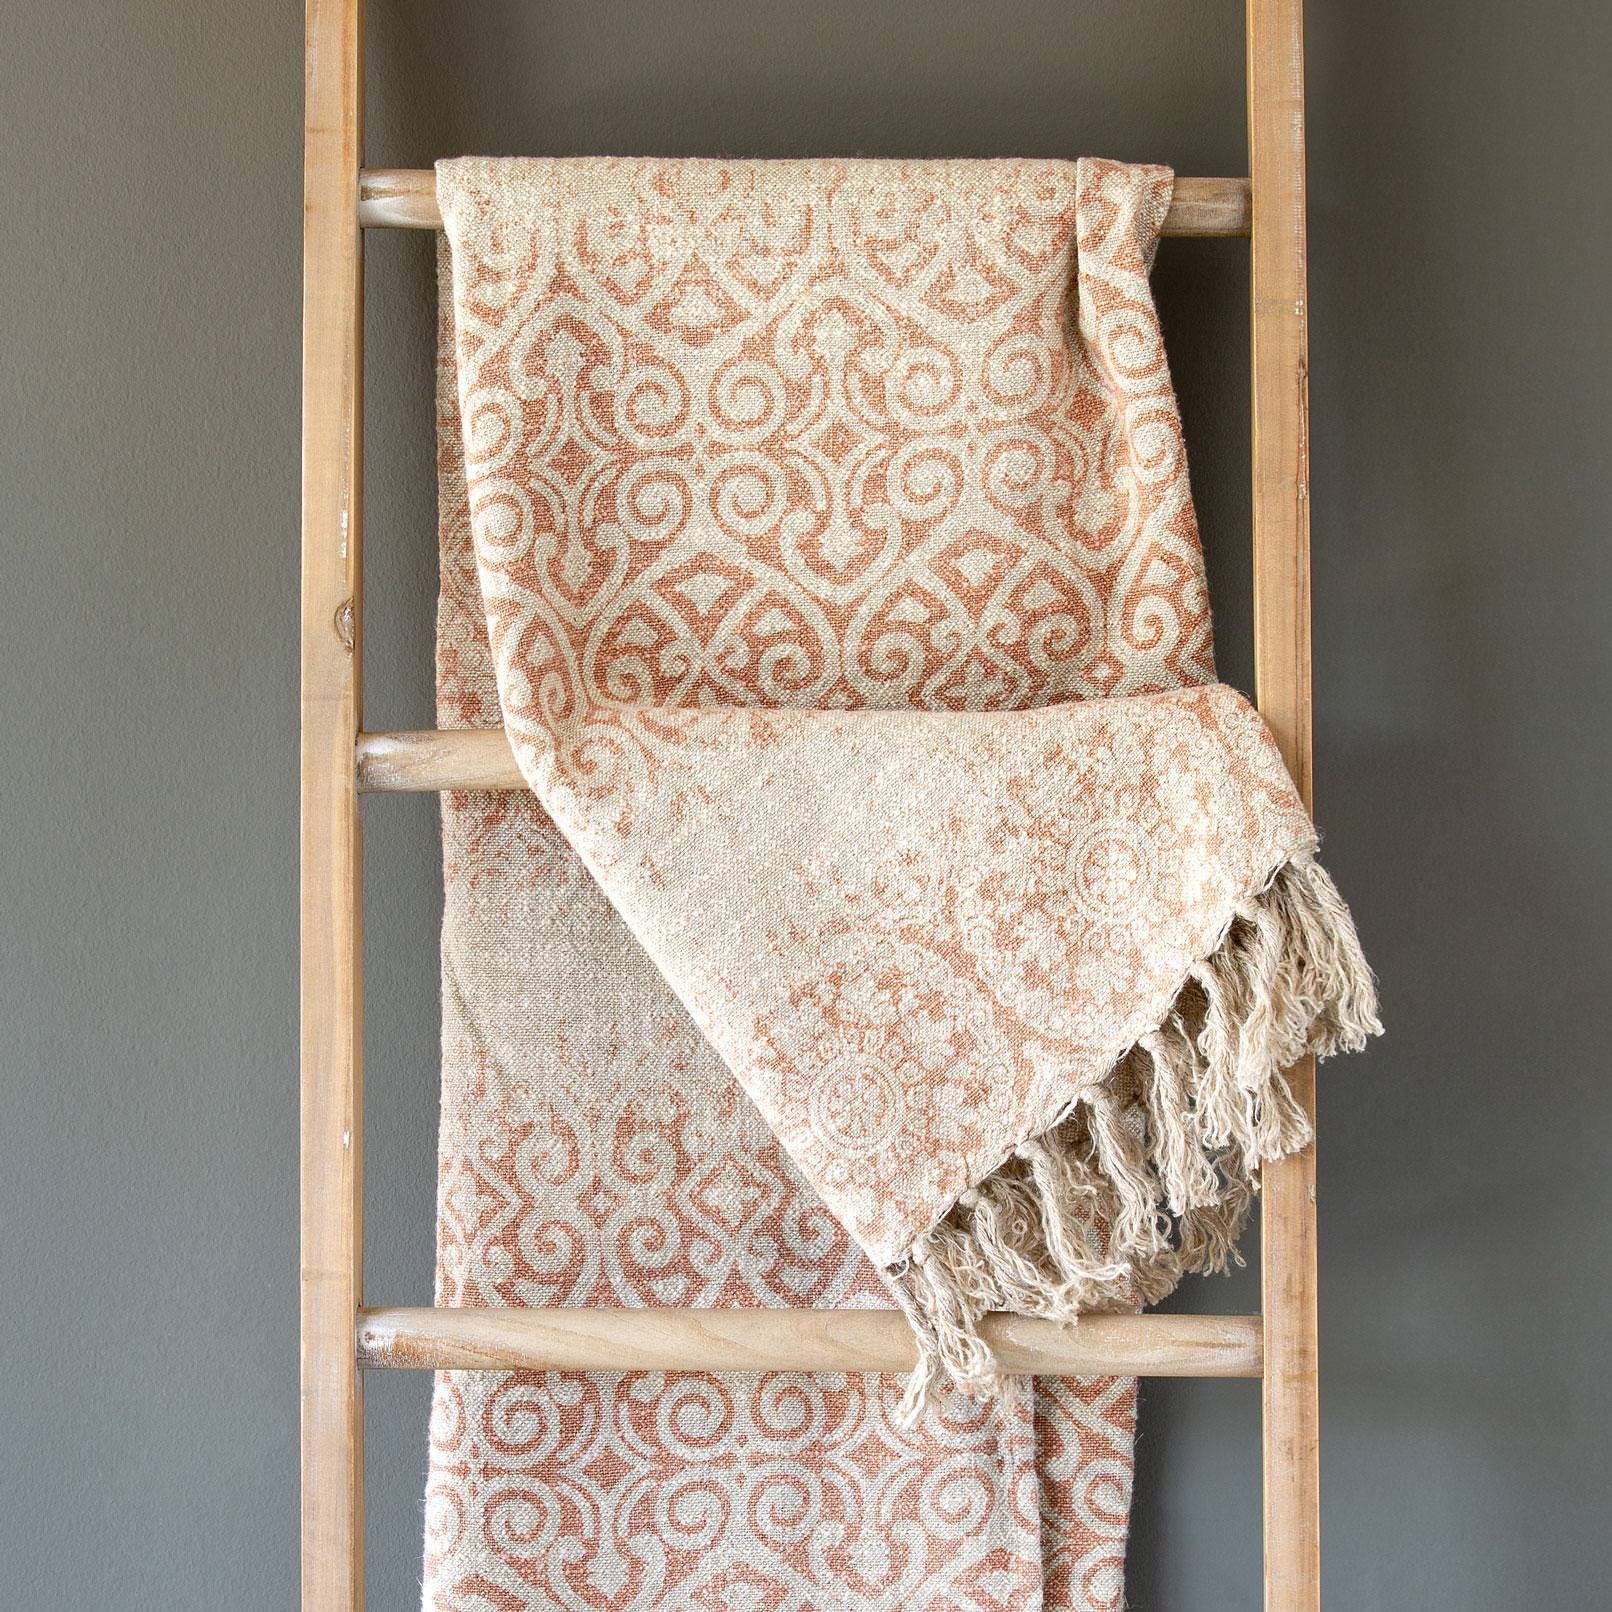 Vintage Printed Linen Throw